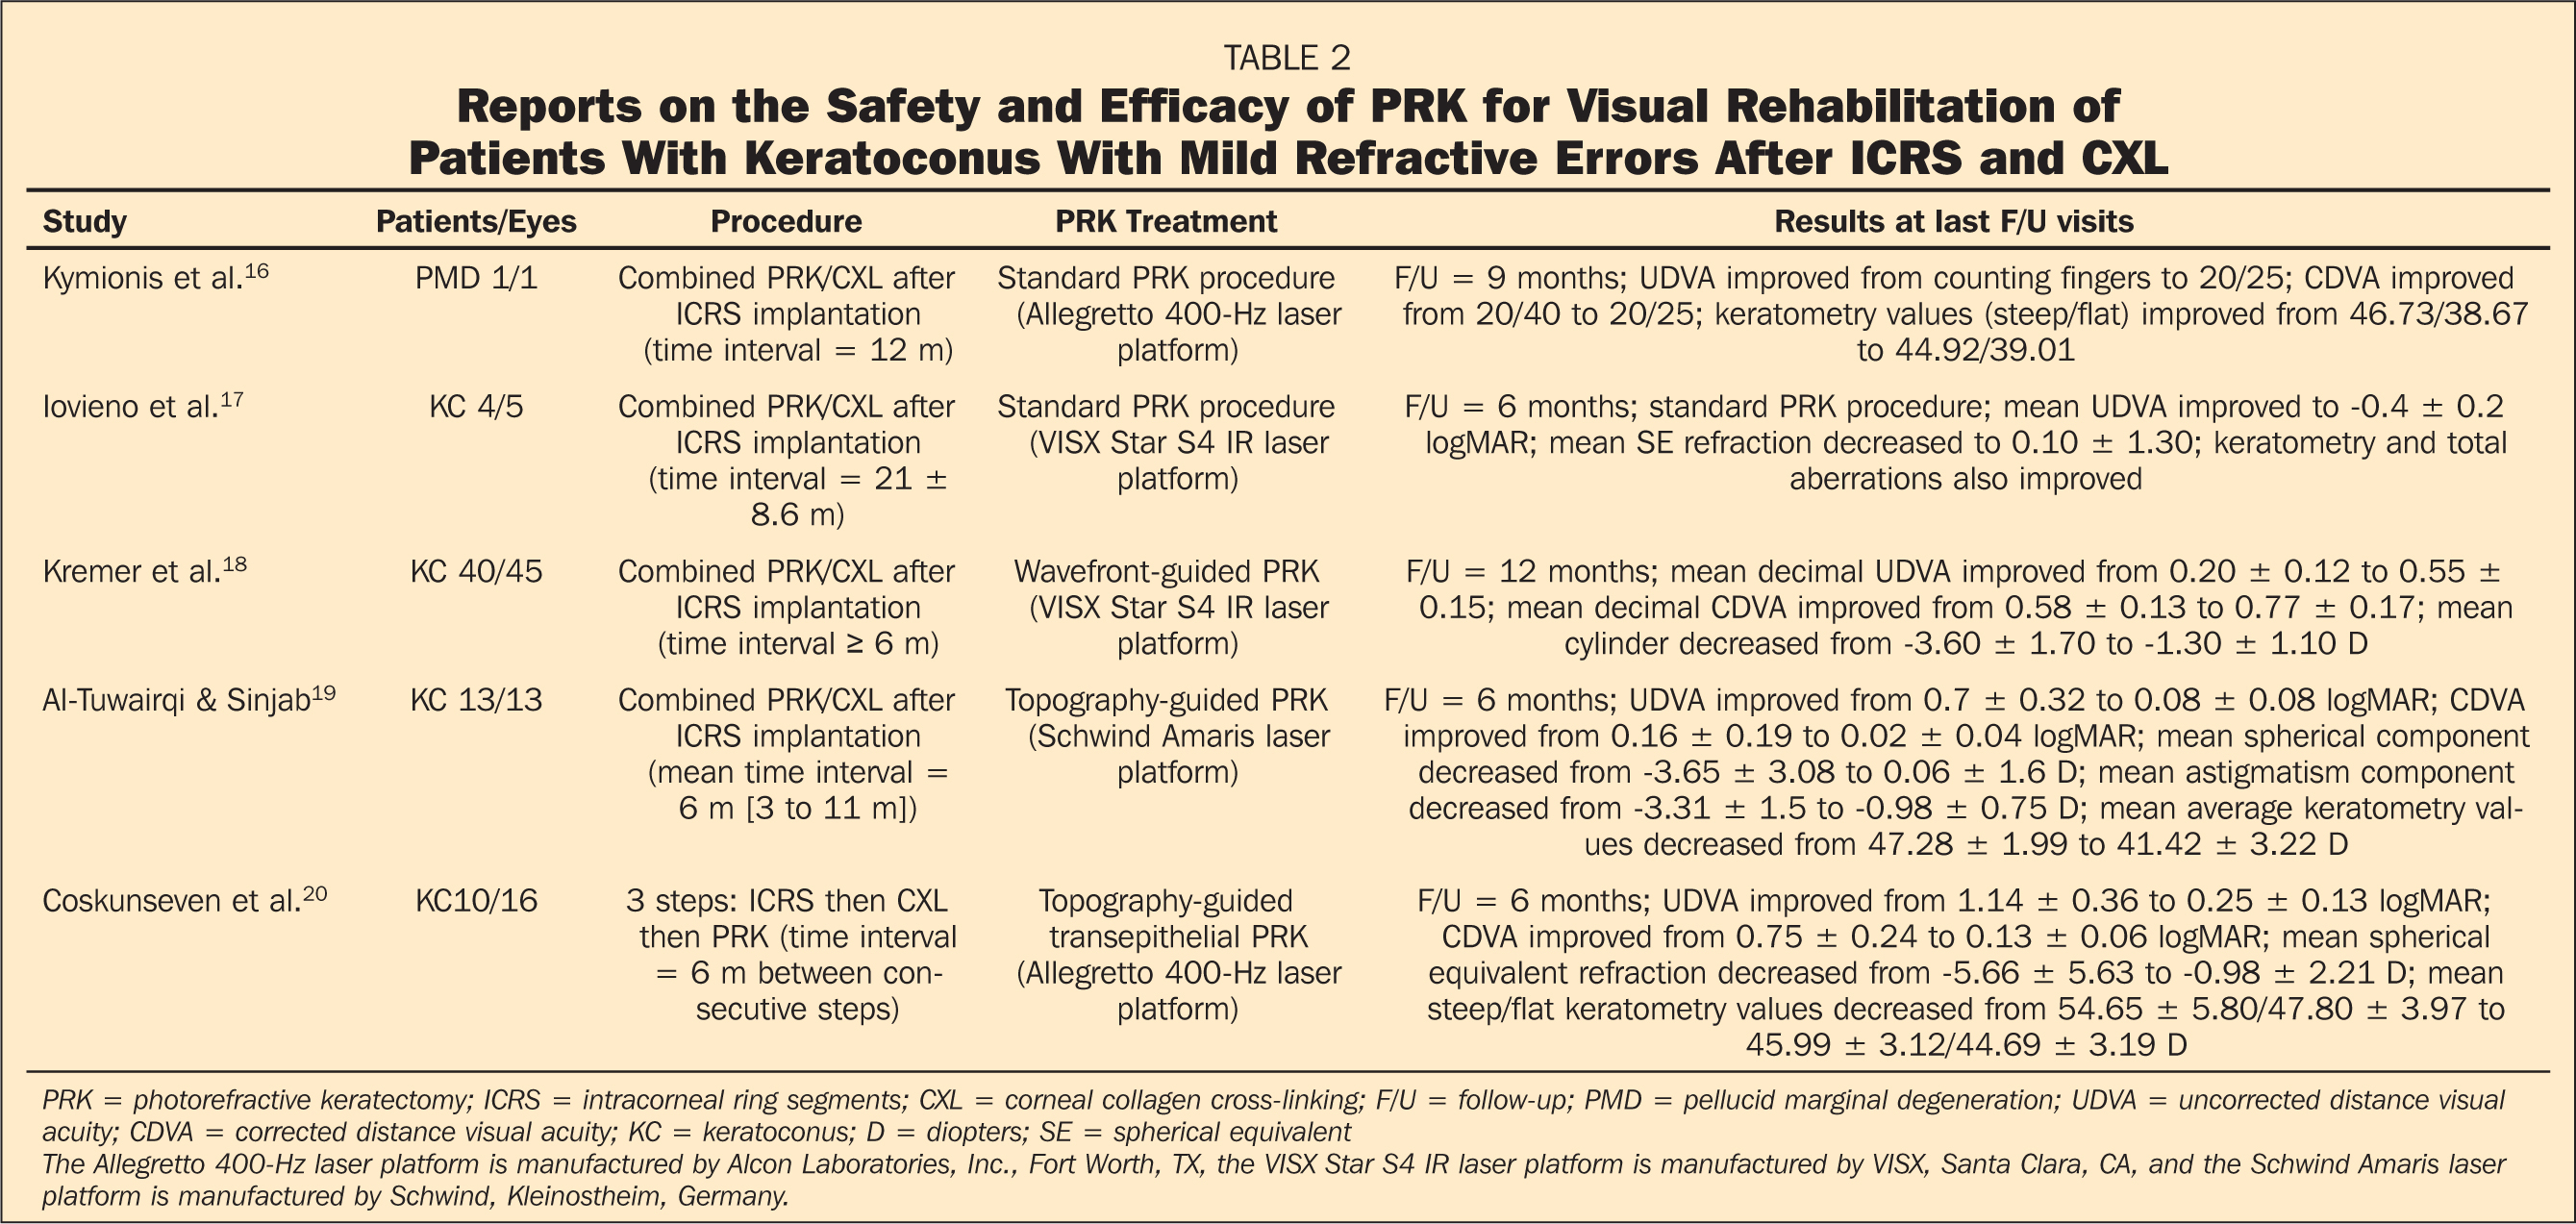 Reports on the Safety and Efficacy of PRK for Visual Rehabilitation of Patients With Keratoconus With Mild Refractive Errors After ICRS and CXL